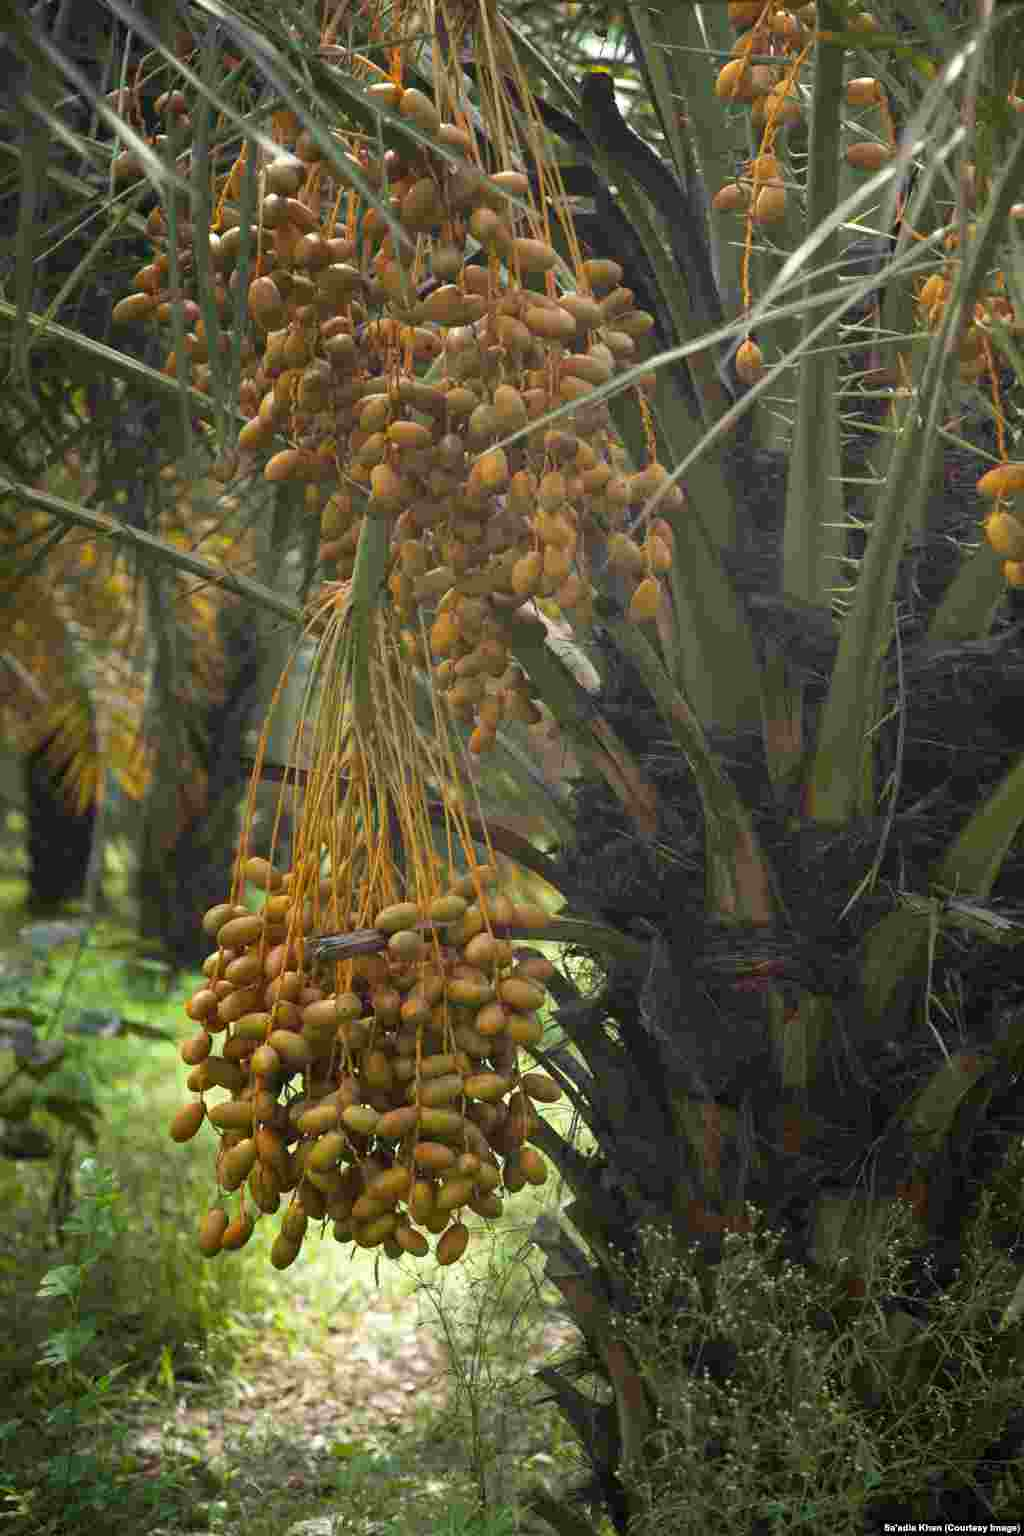 A date tree at a plantation that has reached its peak for bearing fruit.